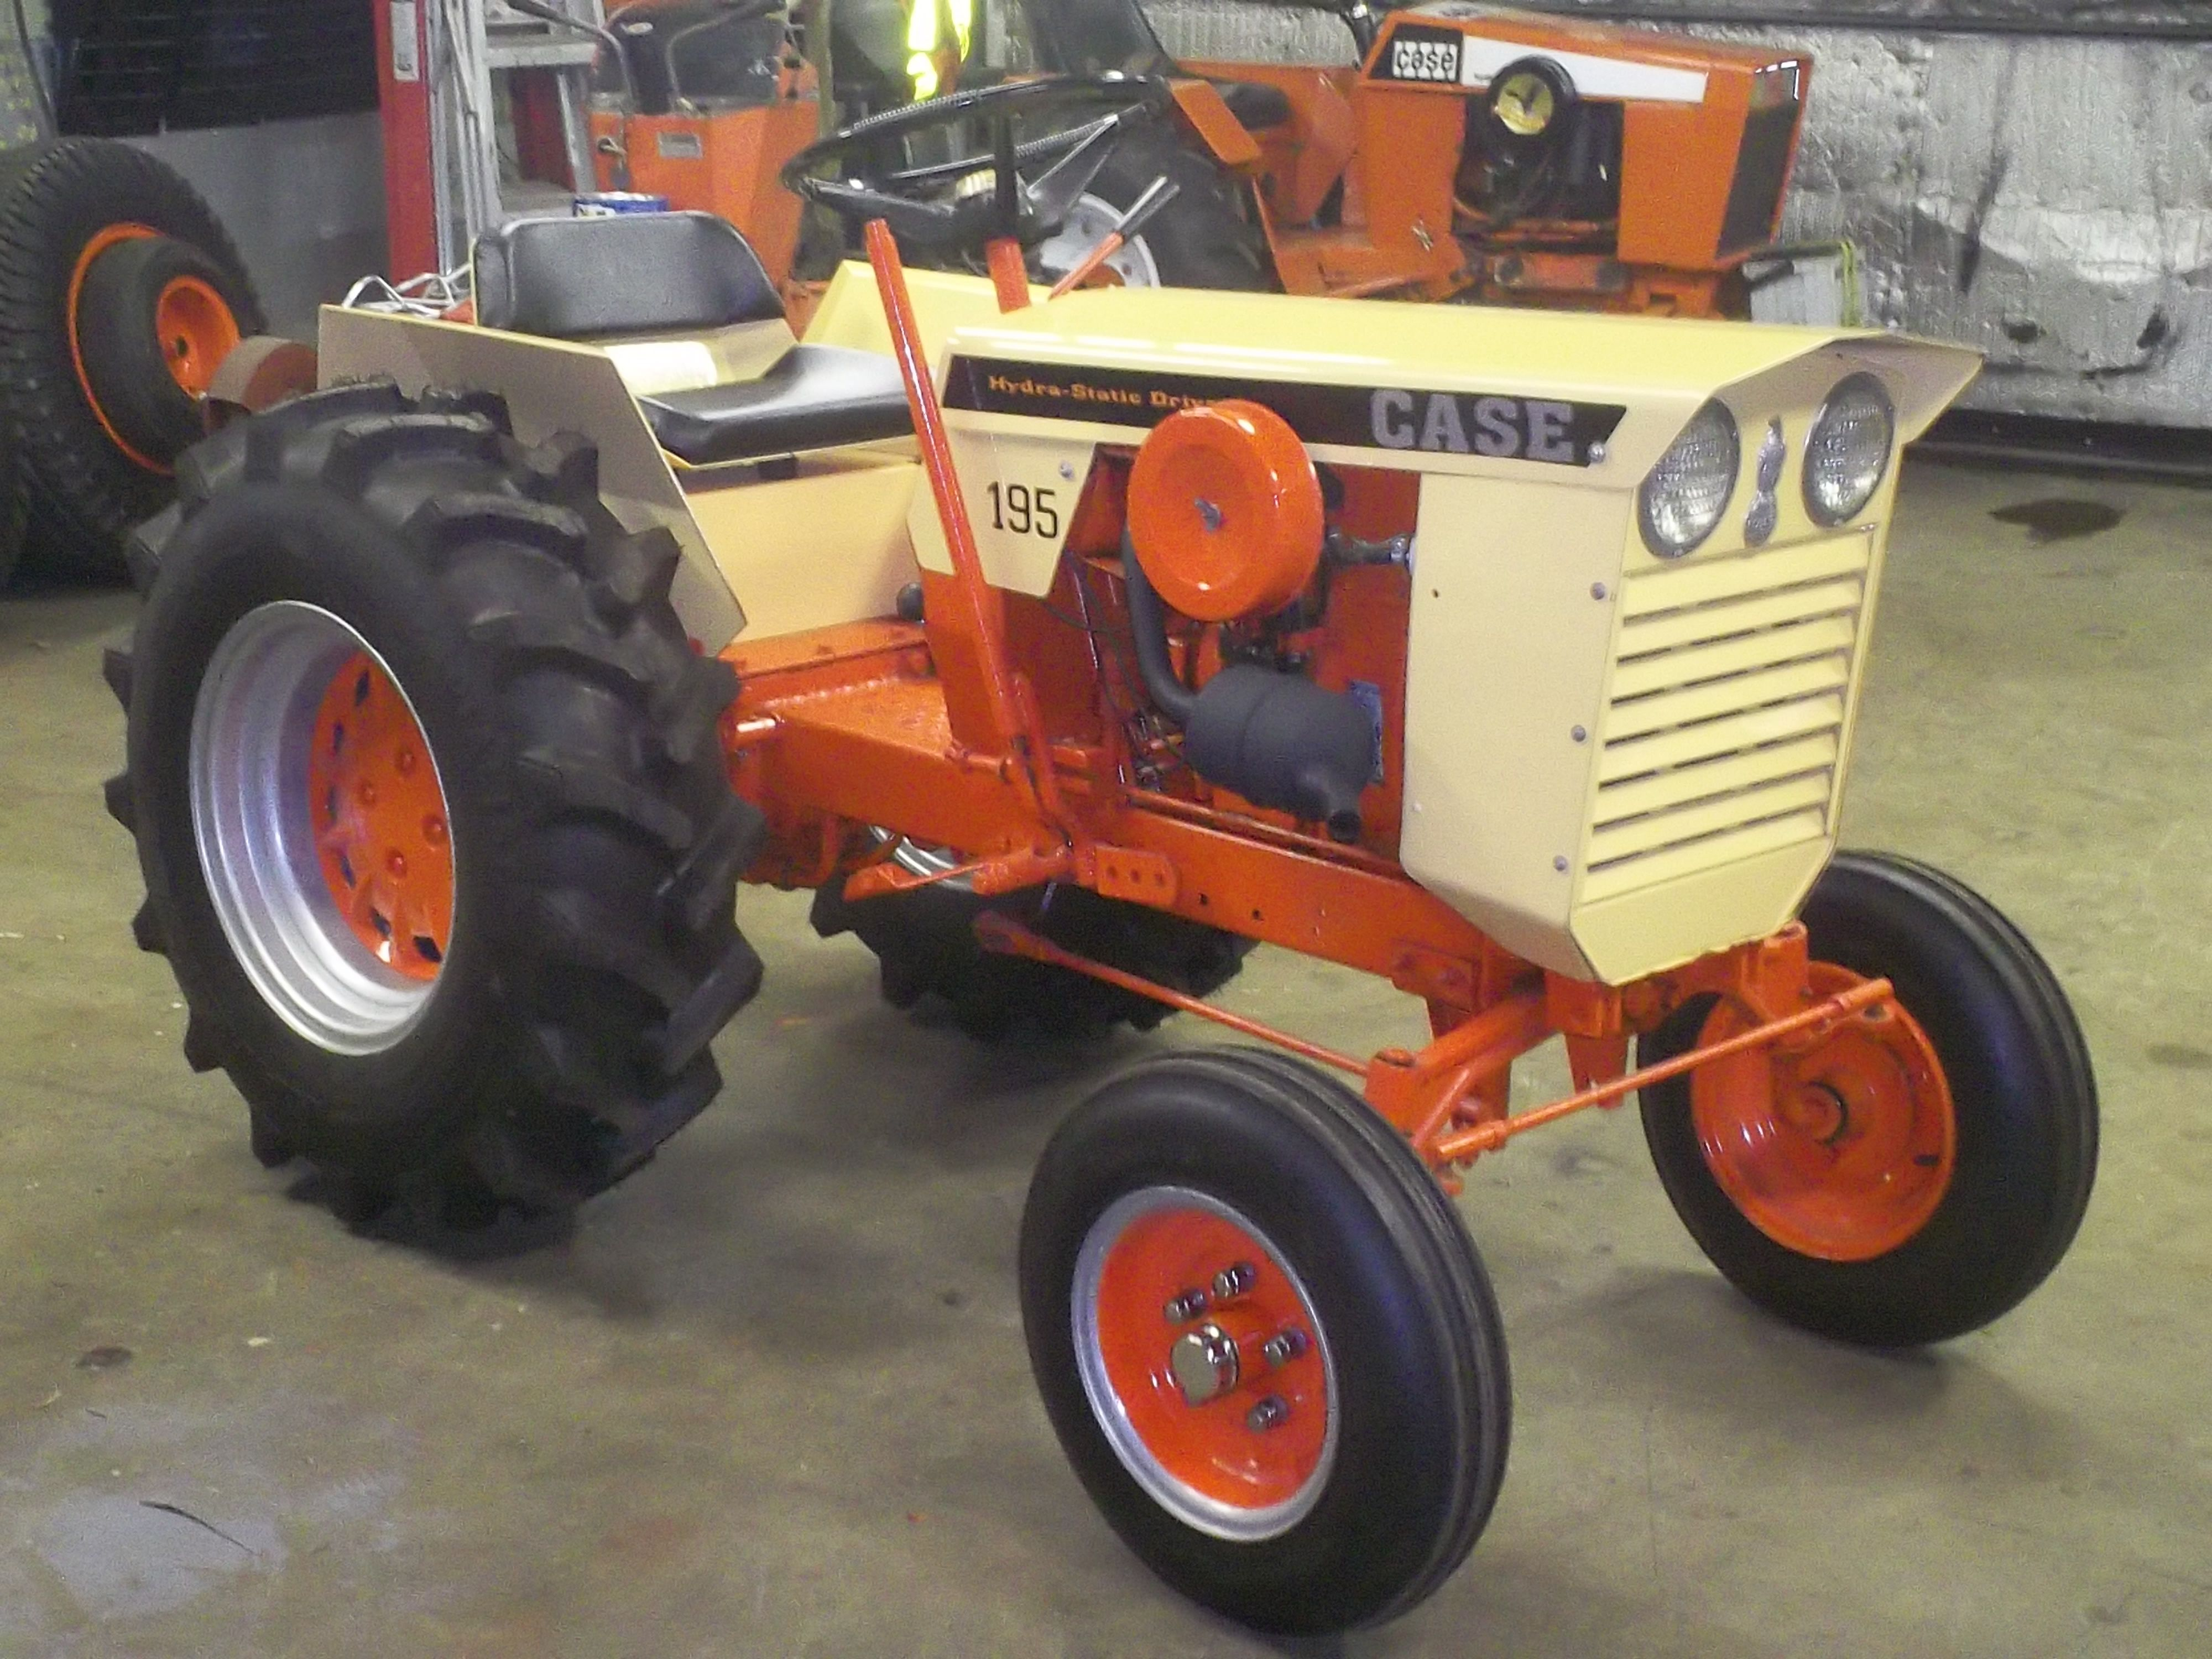 Custom restored case 195 hydra static drive garden tractor for Garden equipment for sale